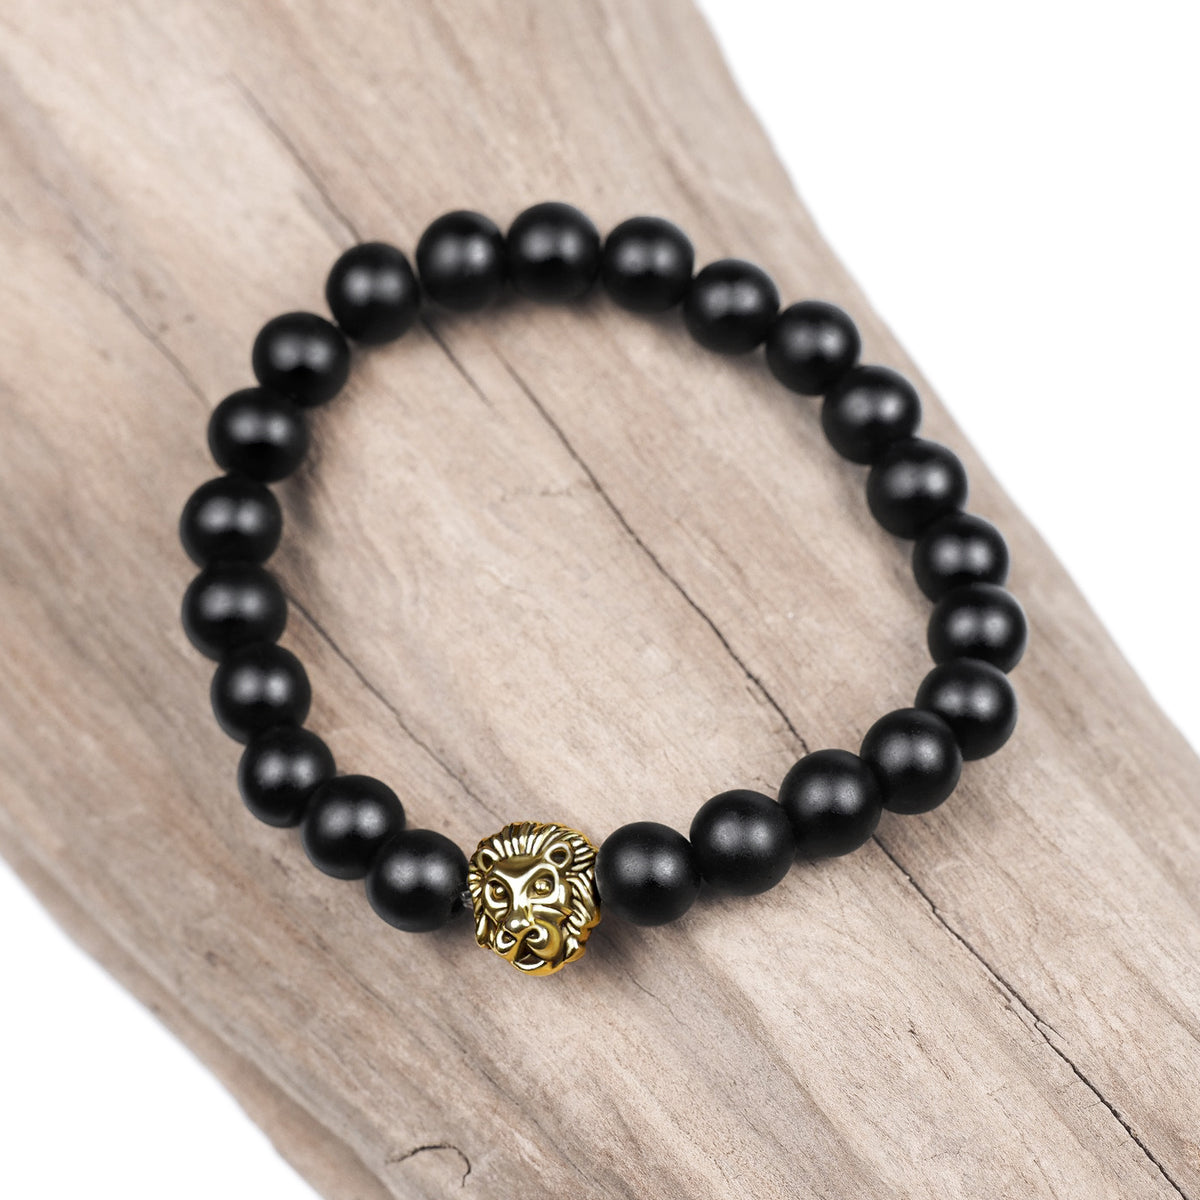 Black Agate Bracelet with a Lion Head Charm